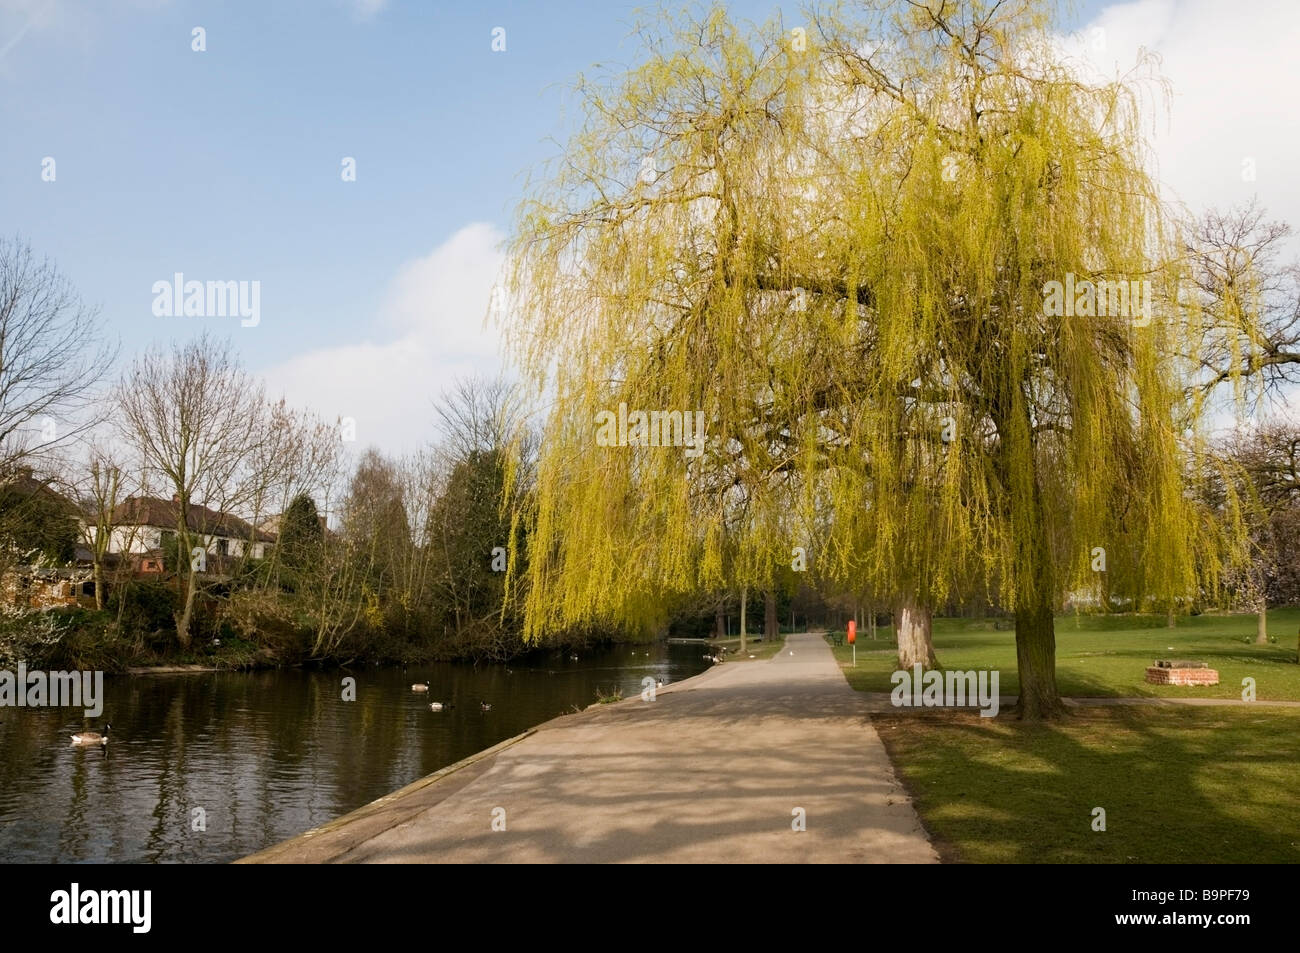 Early spring view of Willow tree, pond, ducks, residential property at Raphael Park, Gidea Park, Romford, Essex, - Stock Image